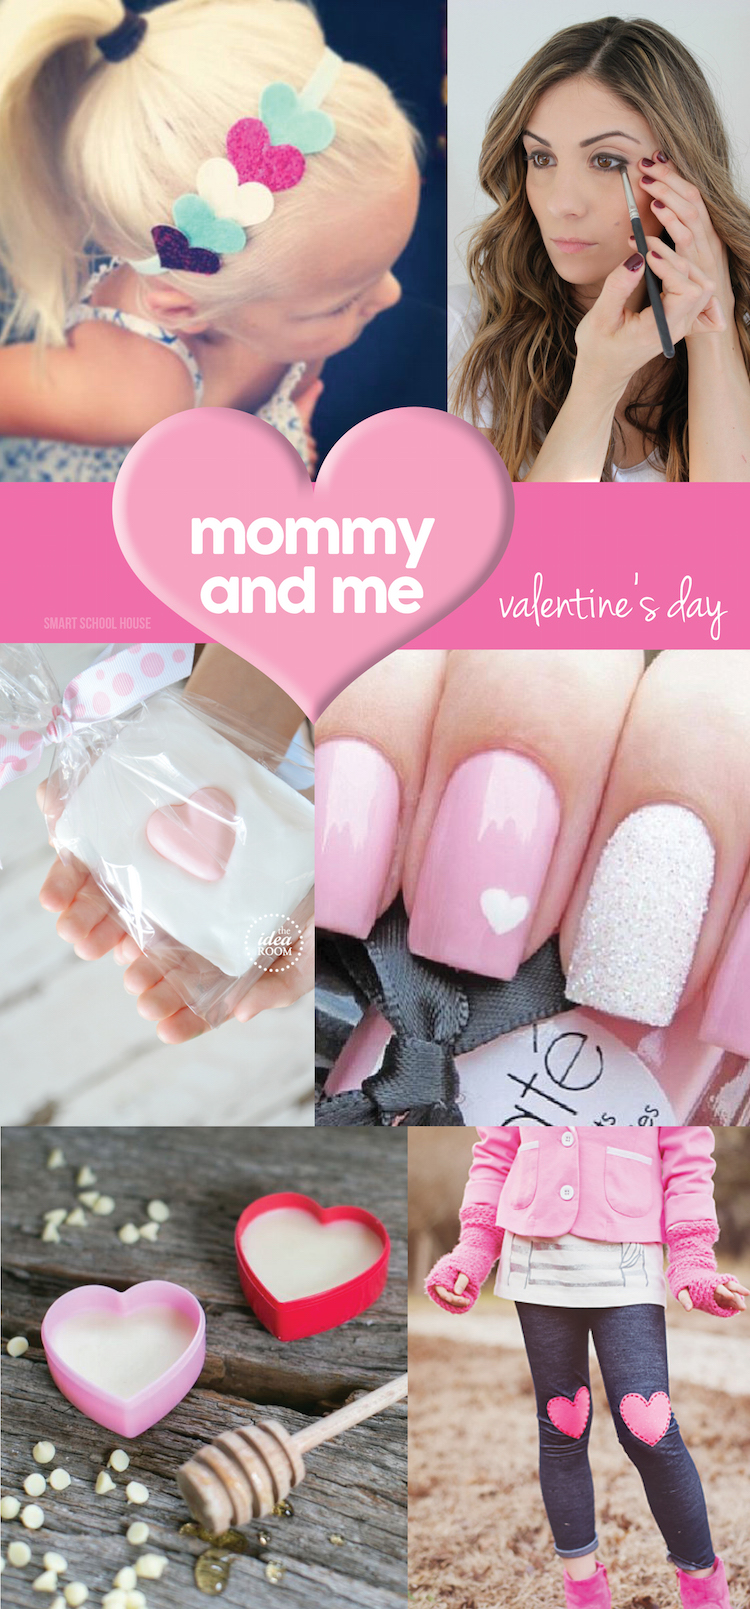 Mommy & Me Valentine's Day ideas